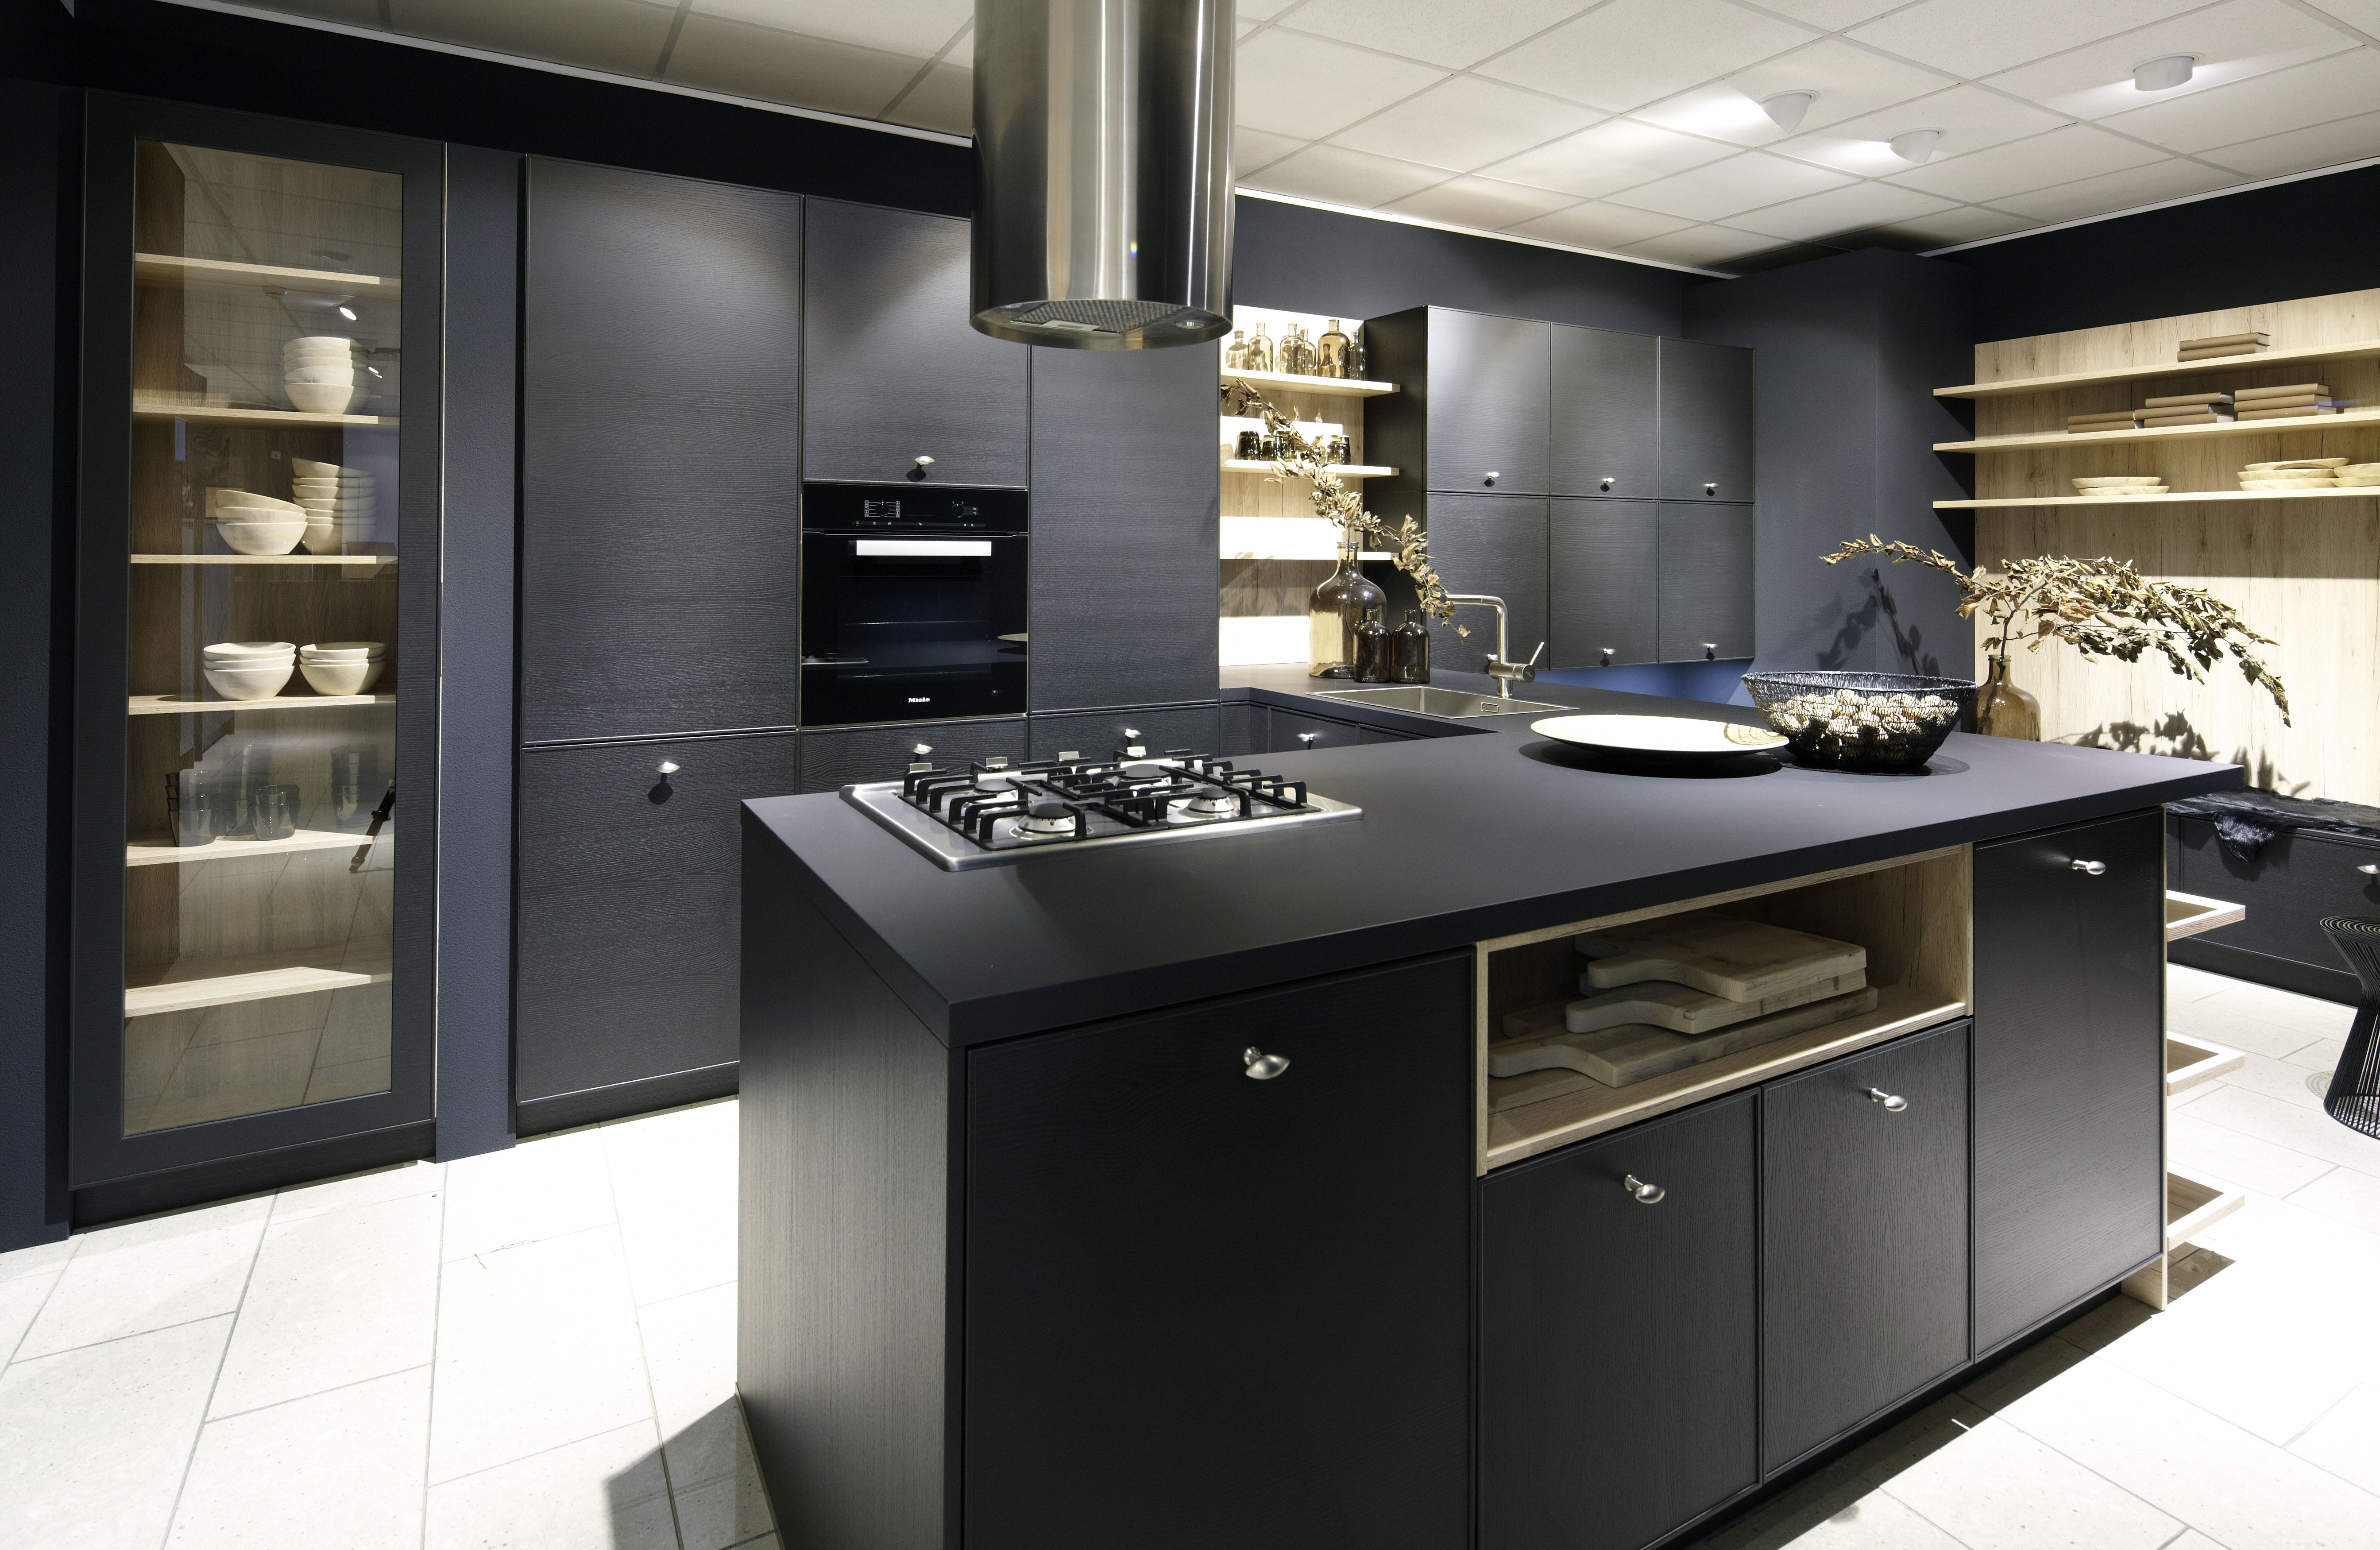 cuisine by privadis cuisiniste rennes. Black Bedroom Furniture Sets. Home Design Ideas